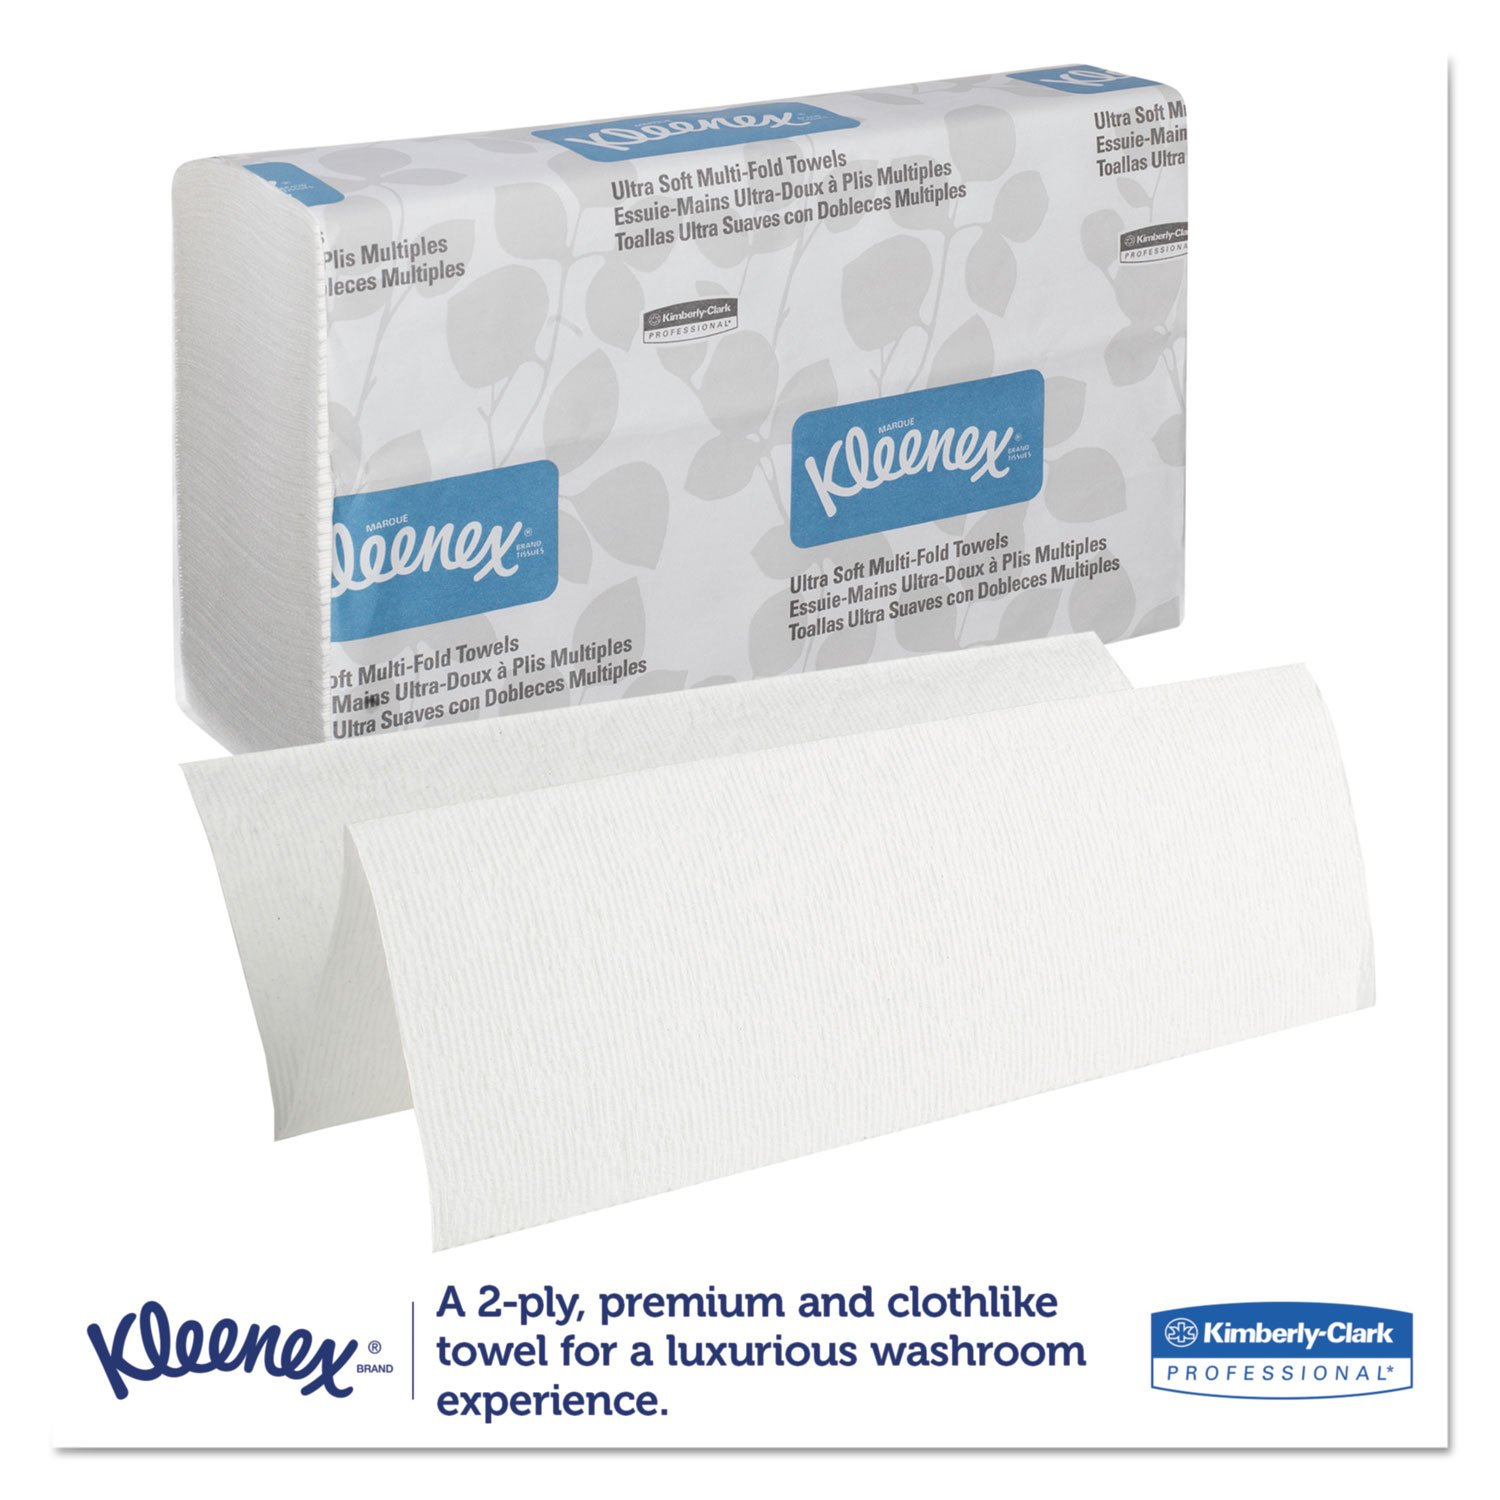 Amazon.com: Kleenex 43752 Ultra Soft Multi-Fold Towels, 2-Ply, 9 1/4 x 9 1/2, 150/Pack, 16 Pack/Carton: Home & Kitchen